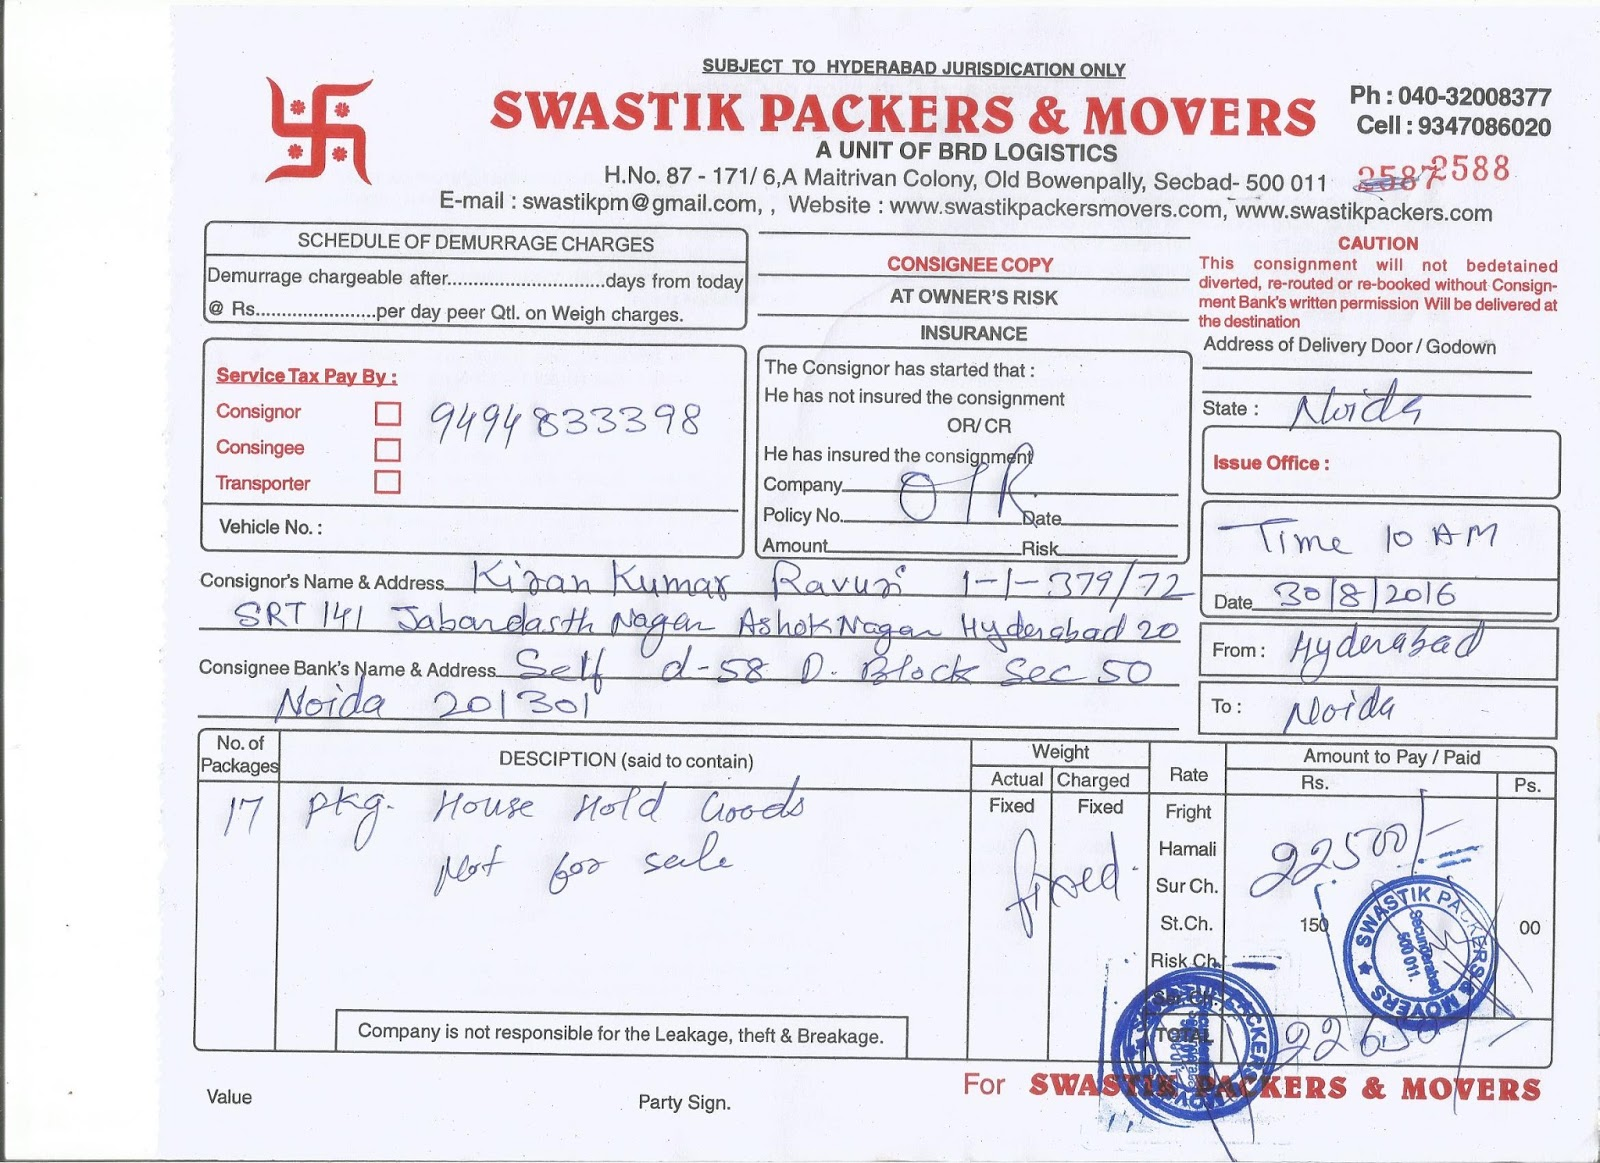 Packers And Movers Bill In Hyderabad - Packers and movers bill format download